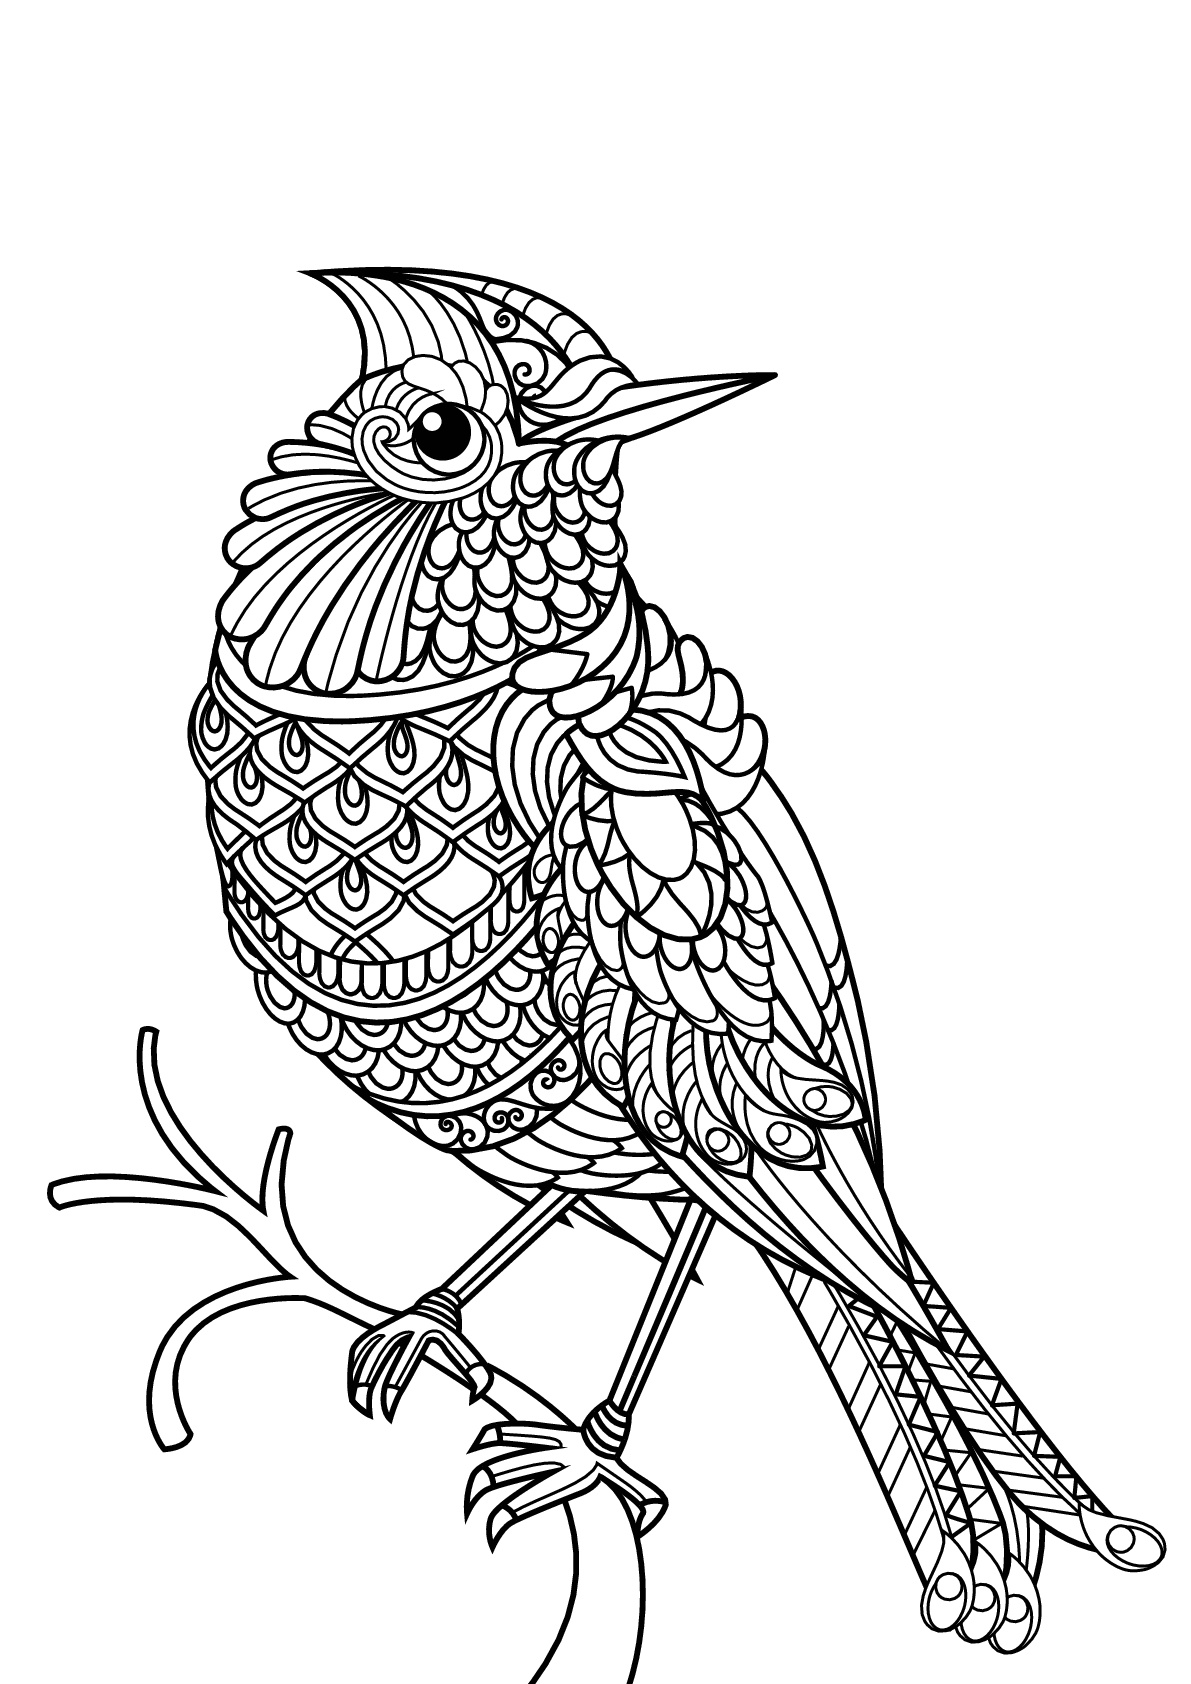 printable pictures of birds bird coloring pages of birds printable pictures